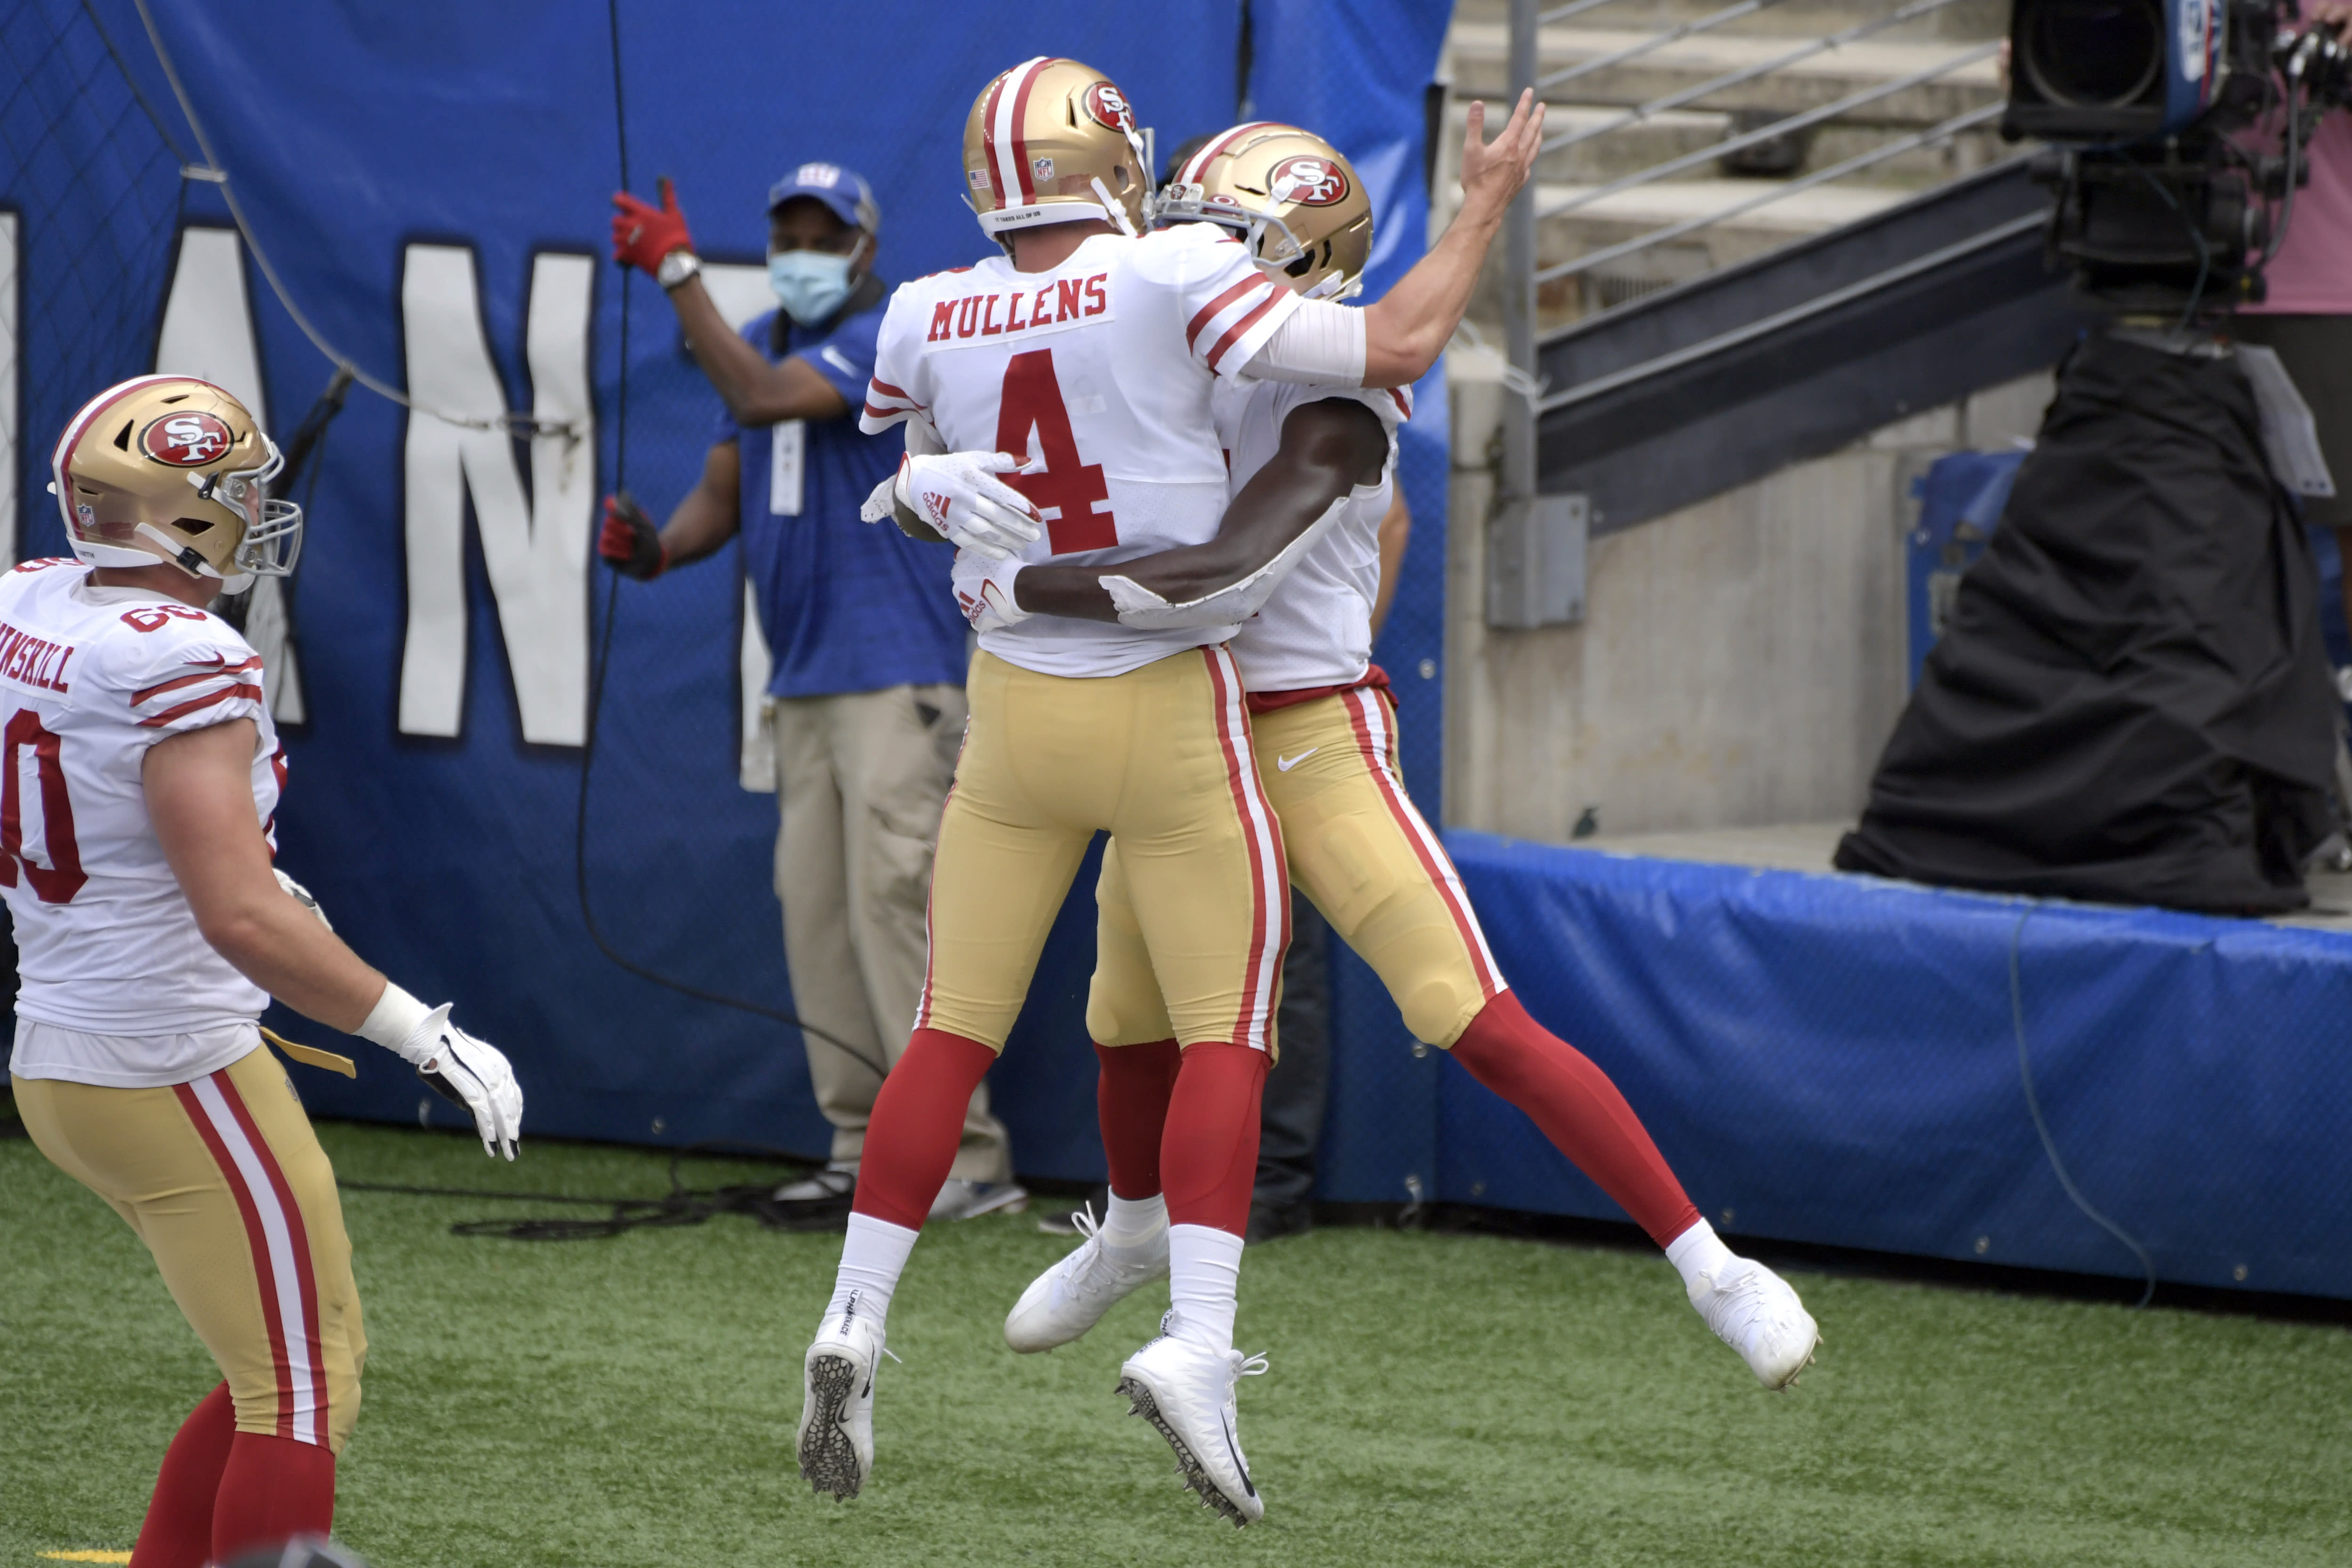 San Francisco 49ers quarterback Nick Mullens (4) celebrates with Brandon Aiyuk during the second half of an NFL football game against the New York Giants, Sunday, Sept. 27, 2020, in East Rutherford, N.J. (AP Photo/Bill Kostroun)